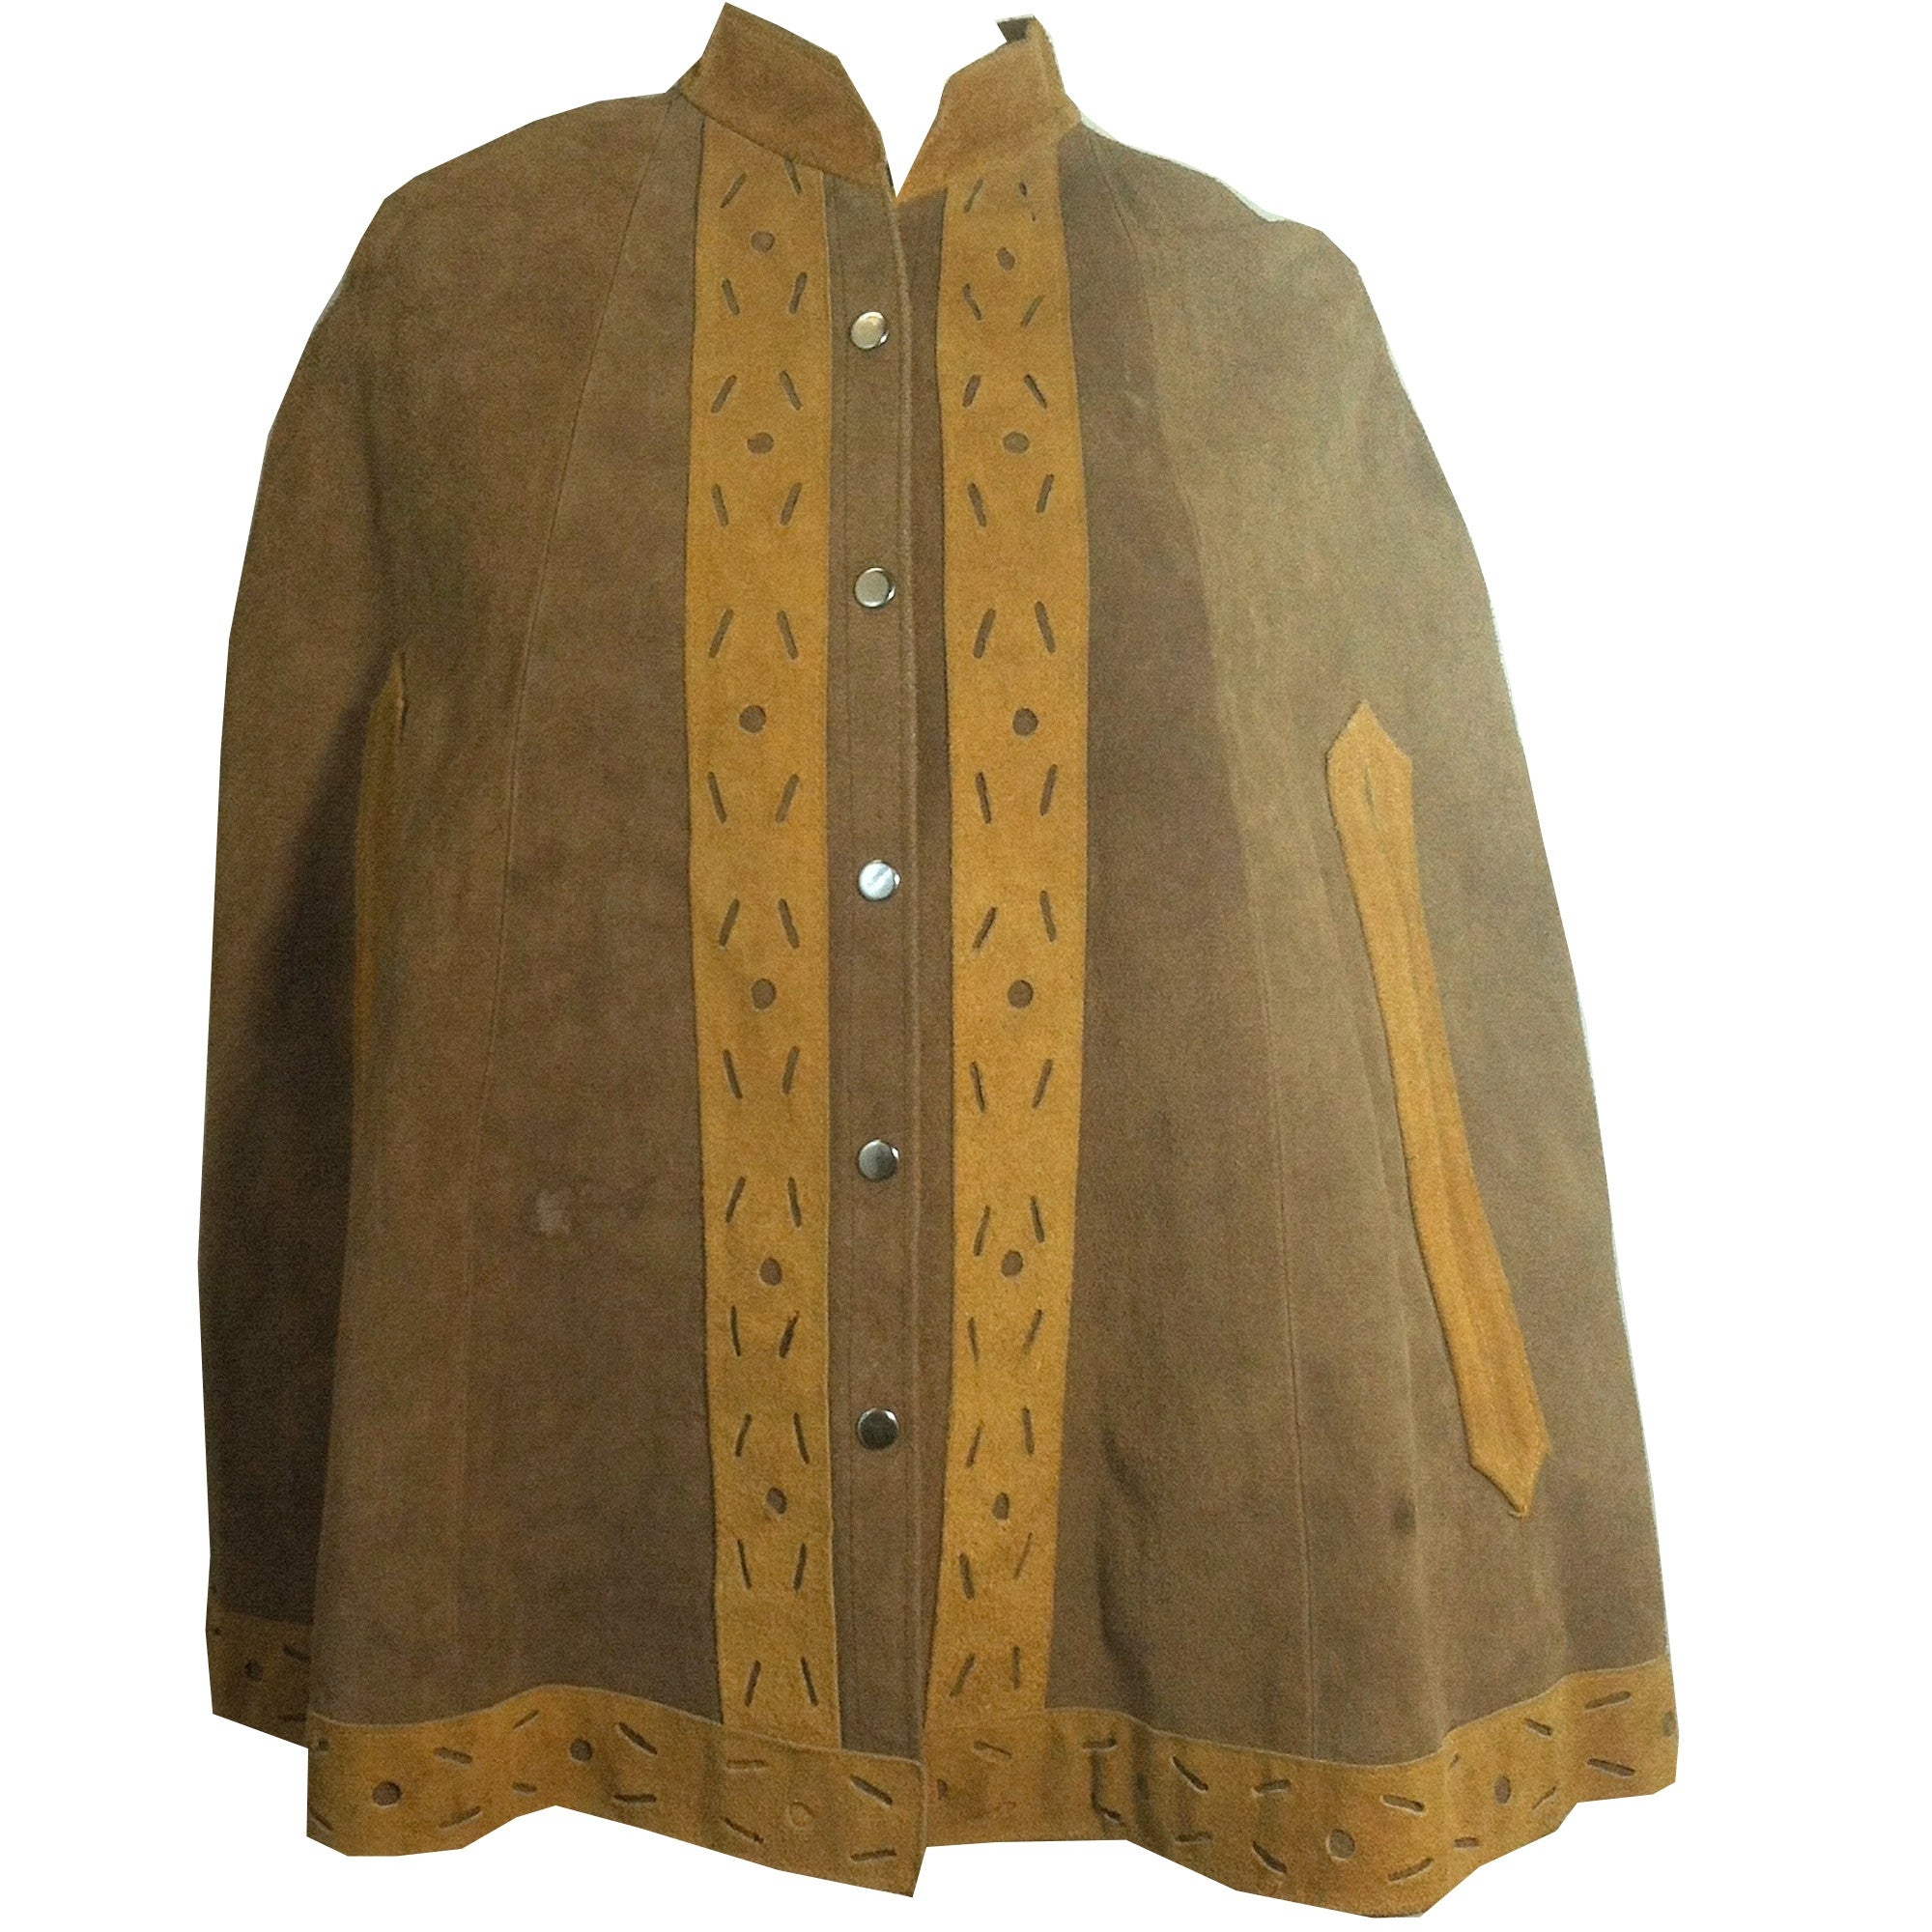 Two-Tone Tan Hippie Chic Suede Poncho circa 1970s